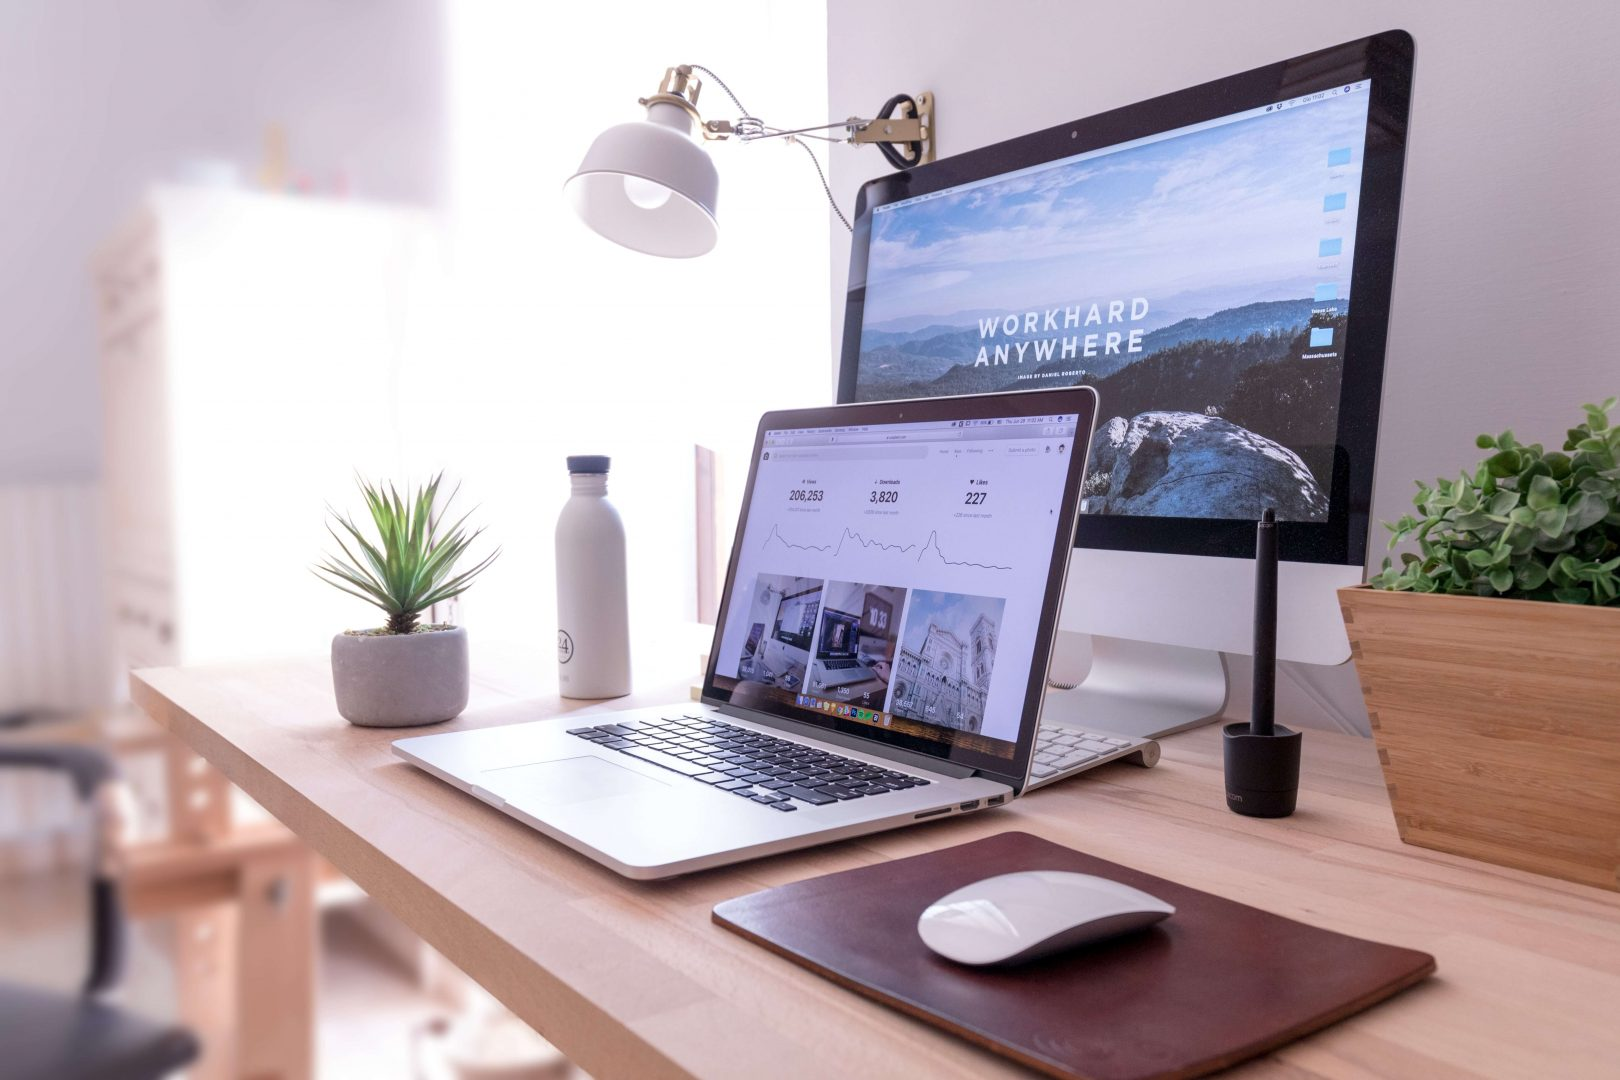 WordPress vs. Wix? This article will help you decide on the best tool to build your website.